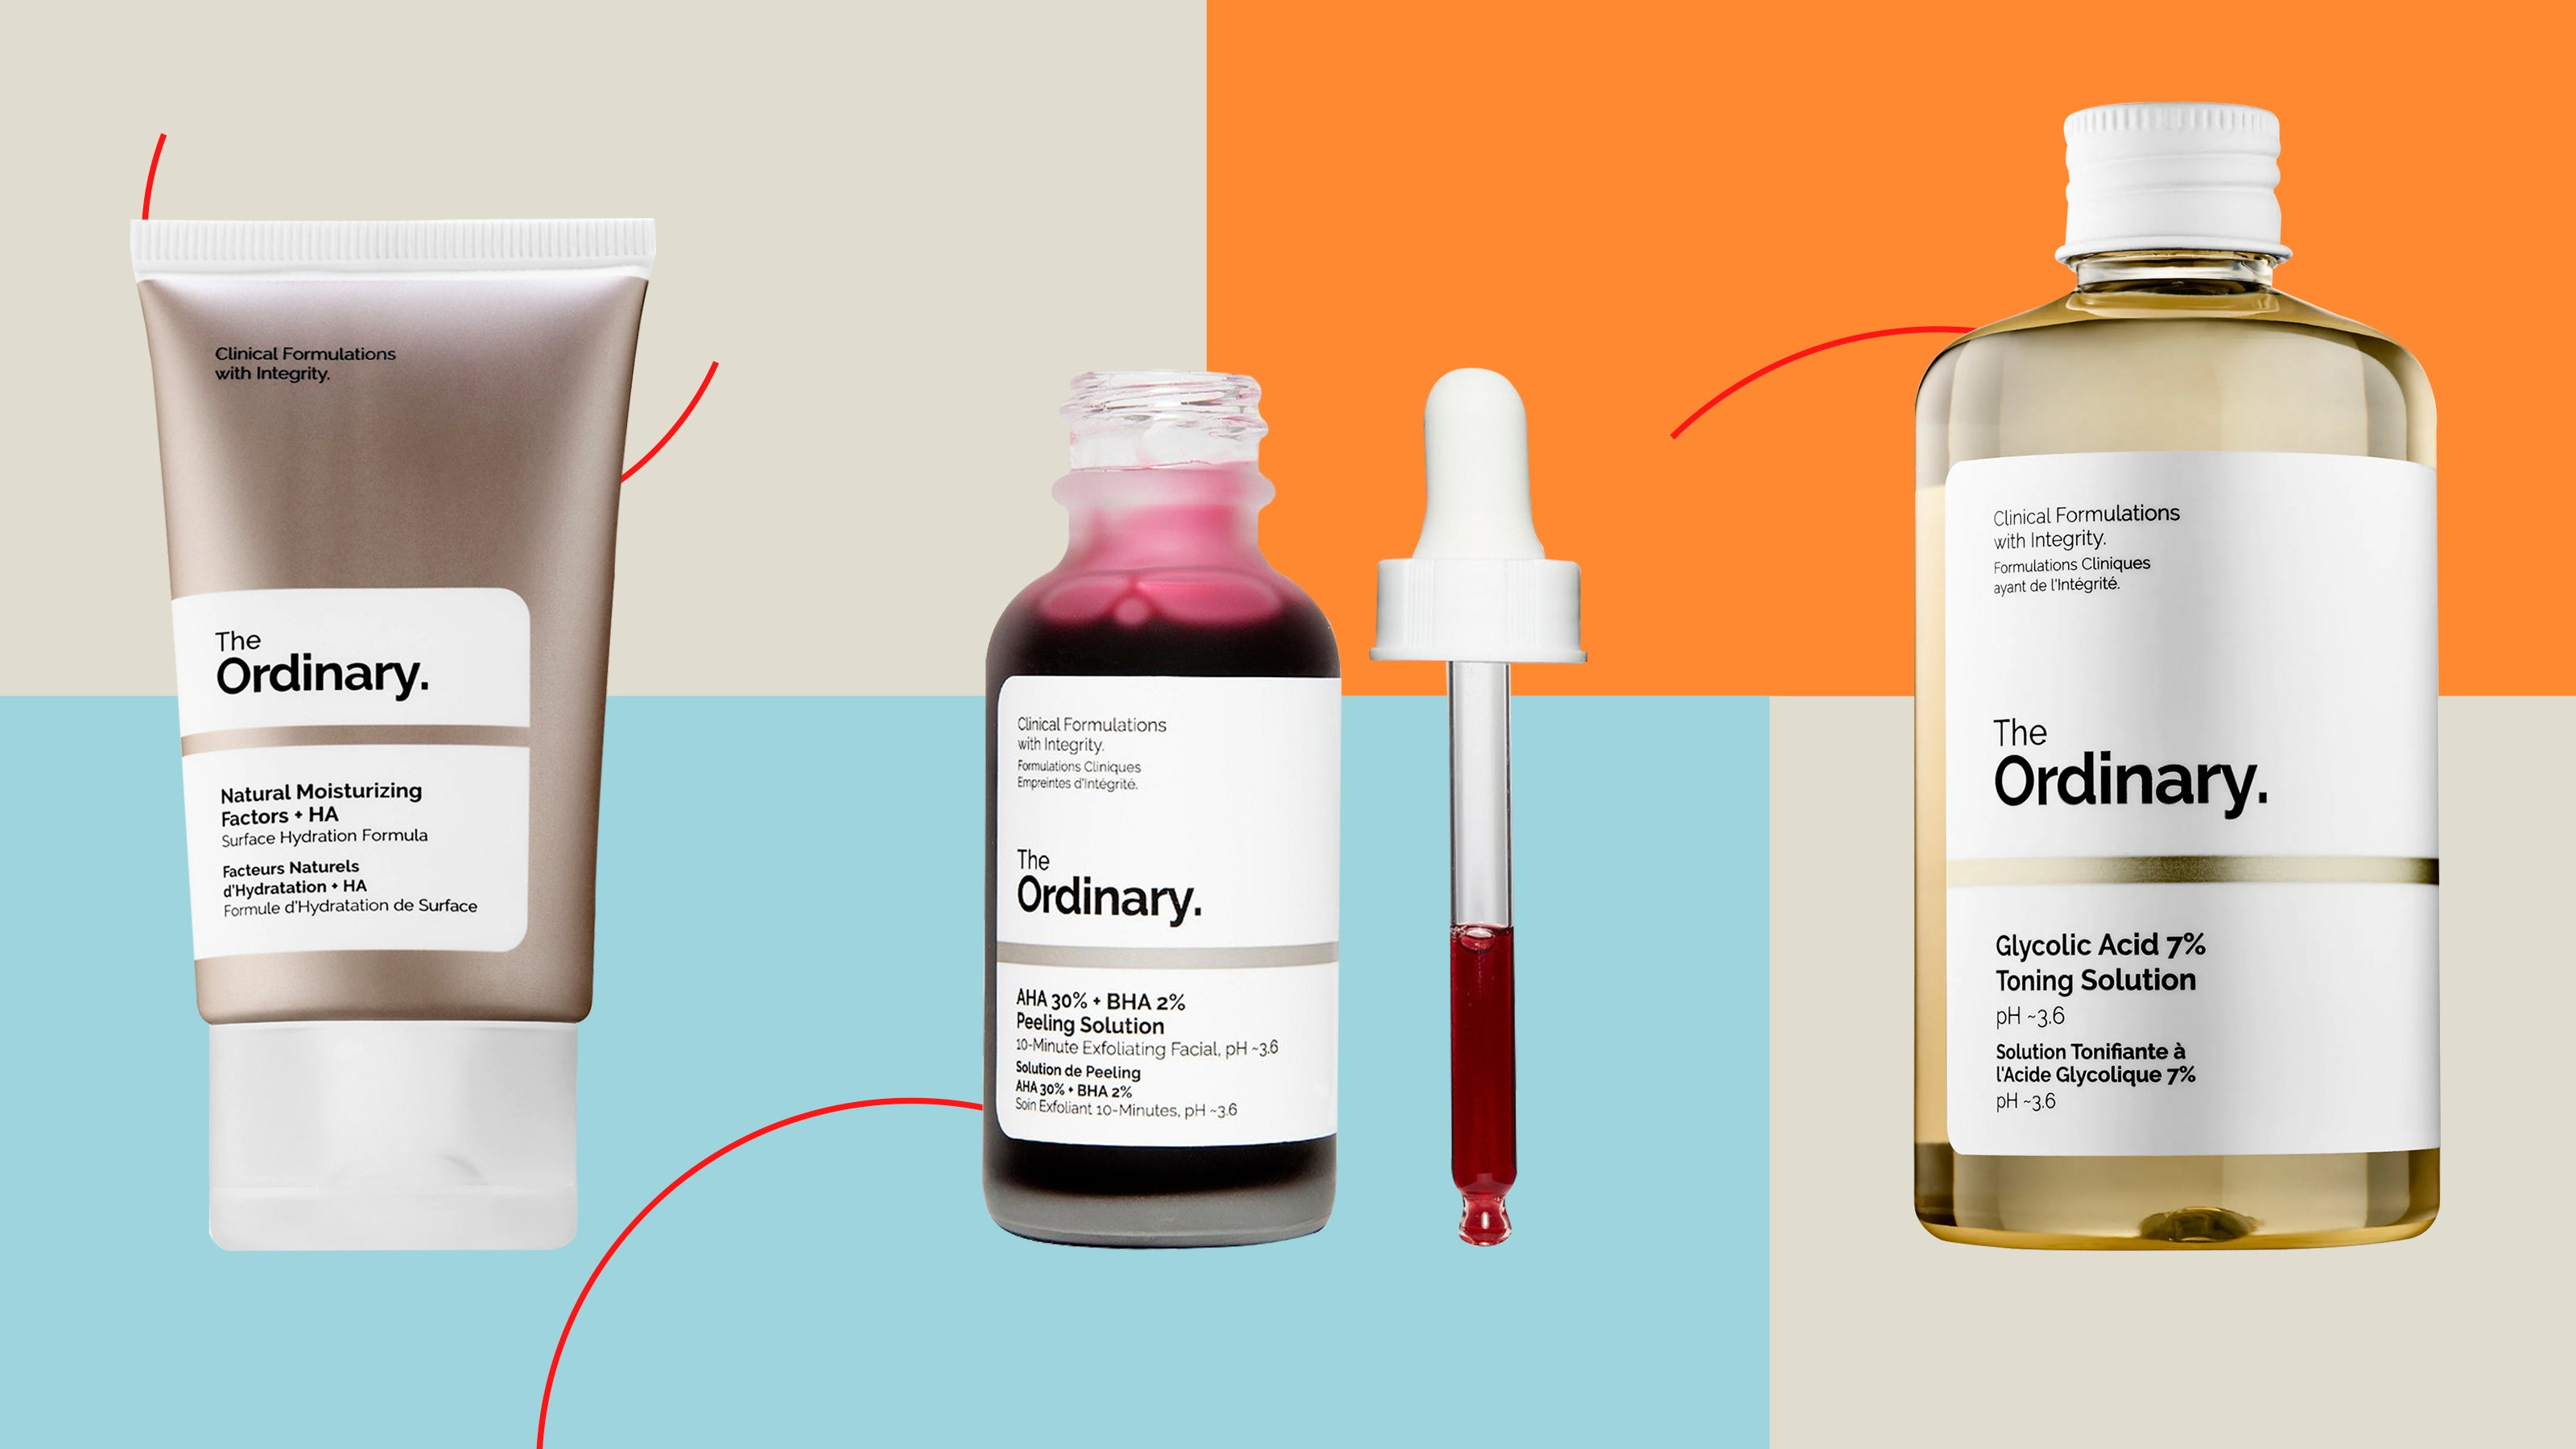 The Walk Magazine Out Of The Ordinary How I Fell In Love With The Ordinary Products Skinspobylana